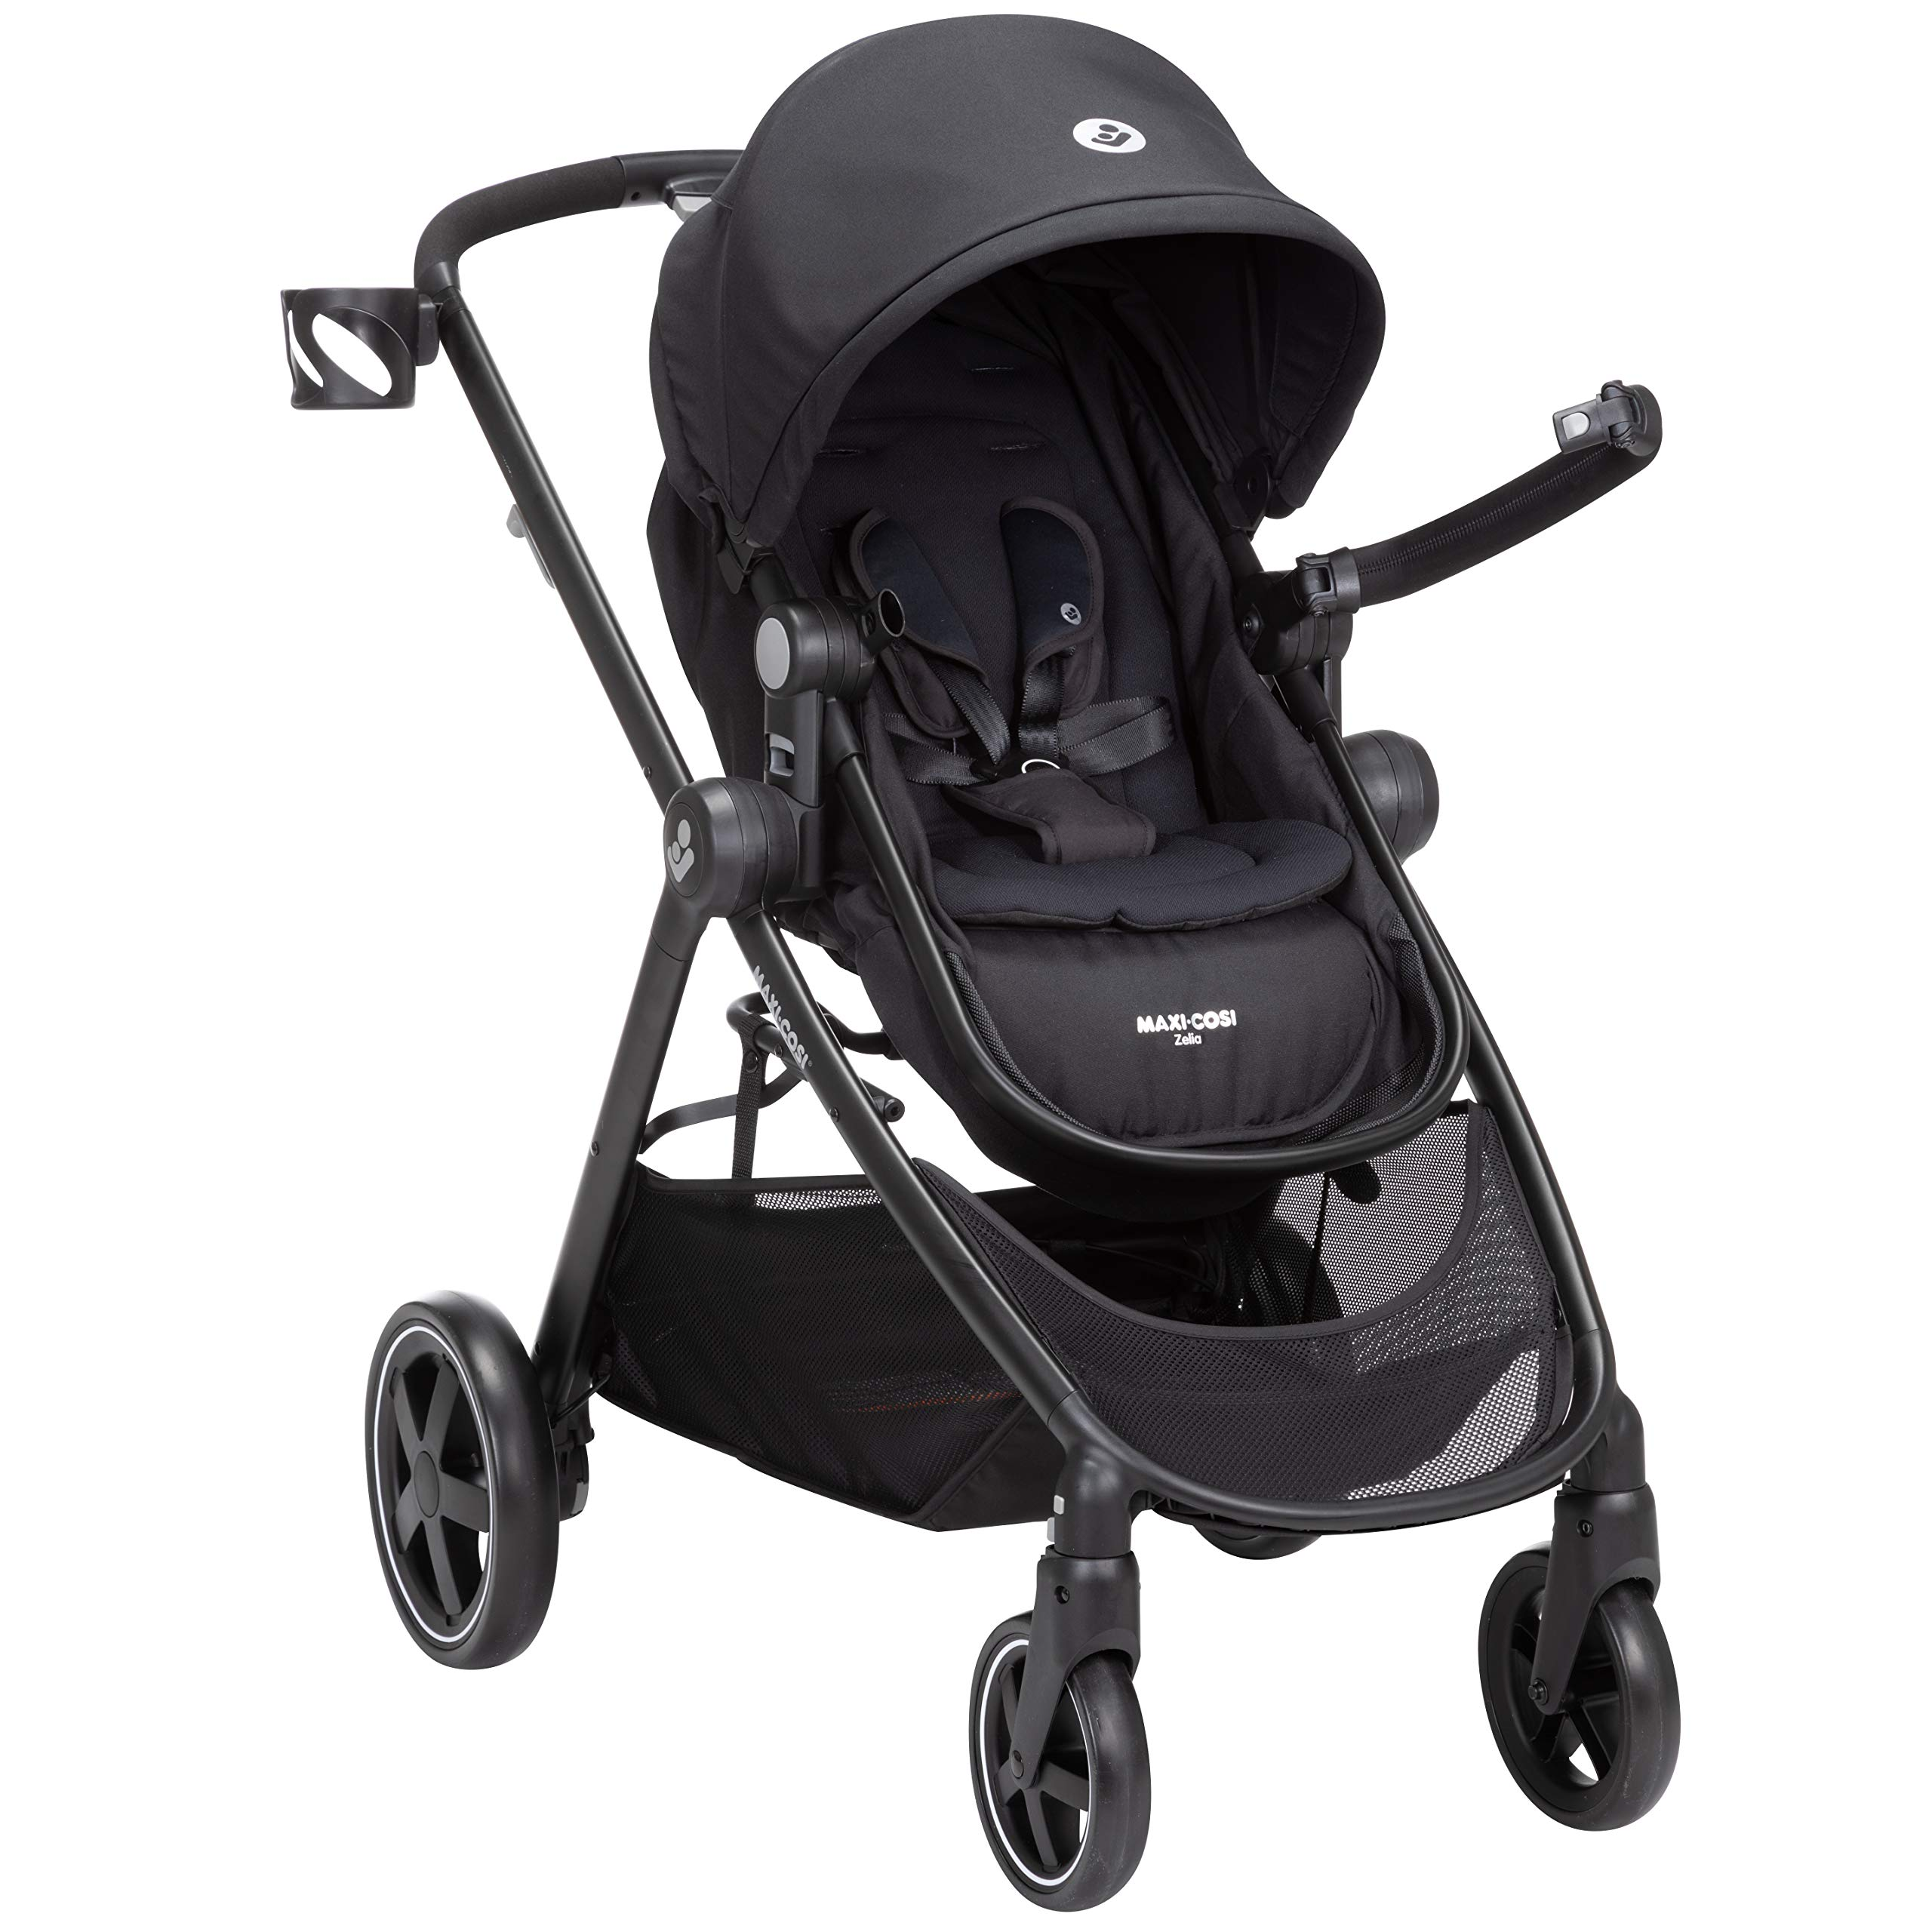 Maxi-Cosi Zelia Stroller, Night Black, One Size by Maxi-Cosi (Image #11)